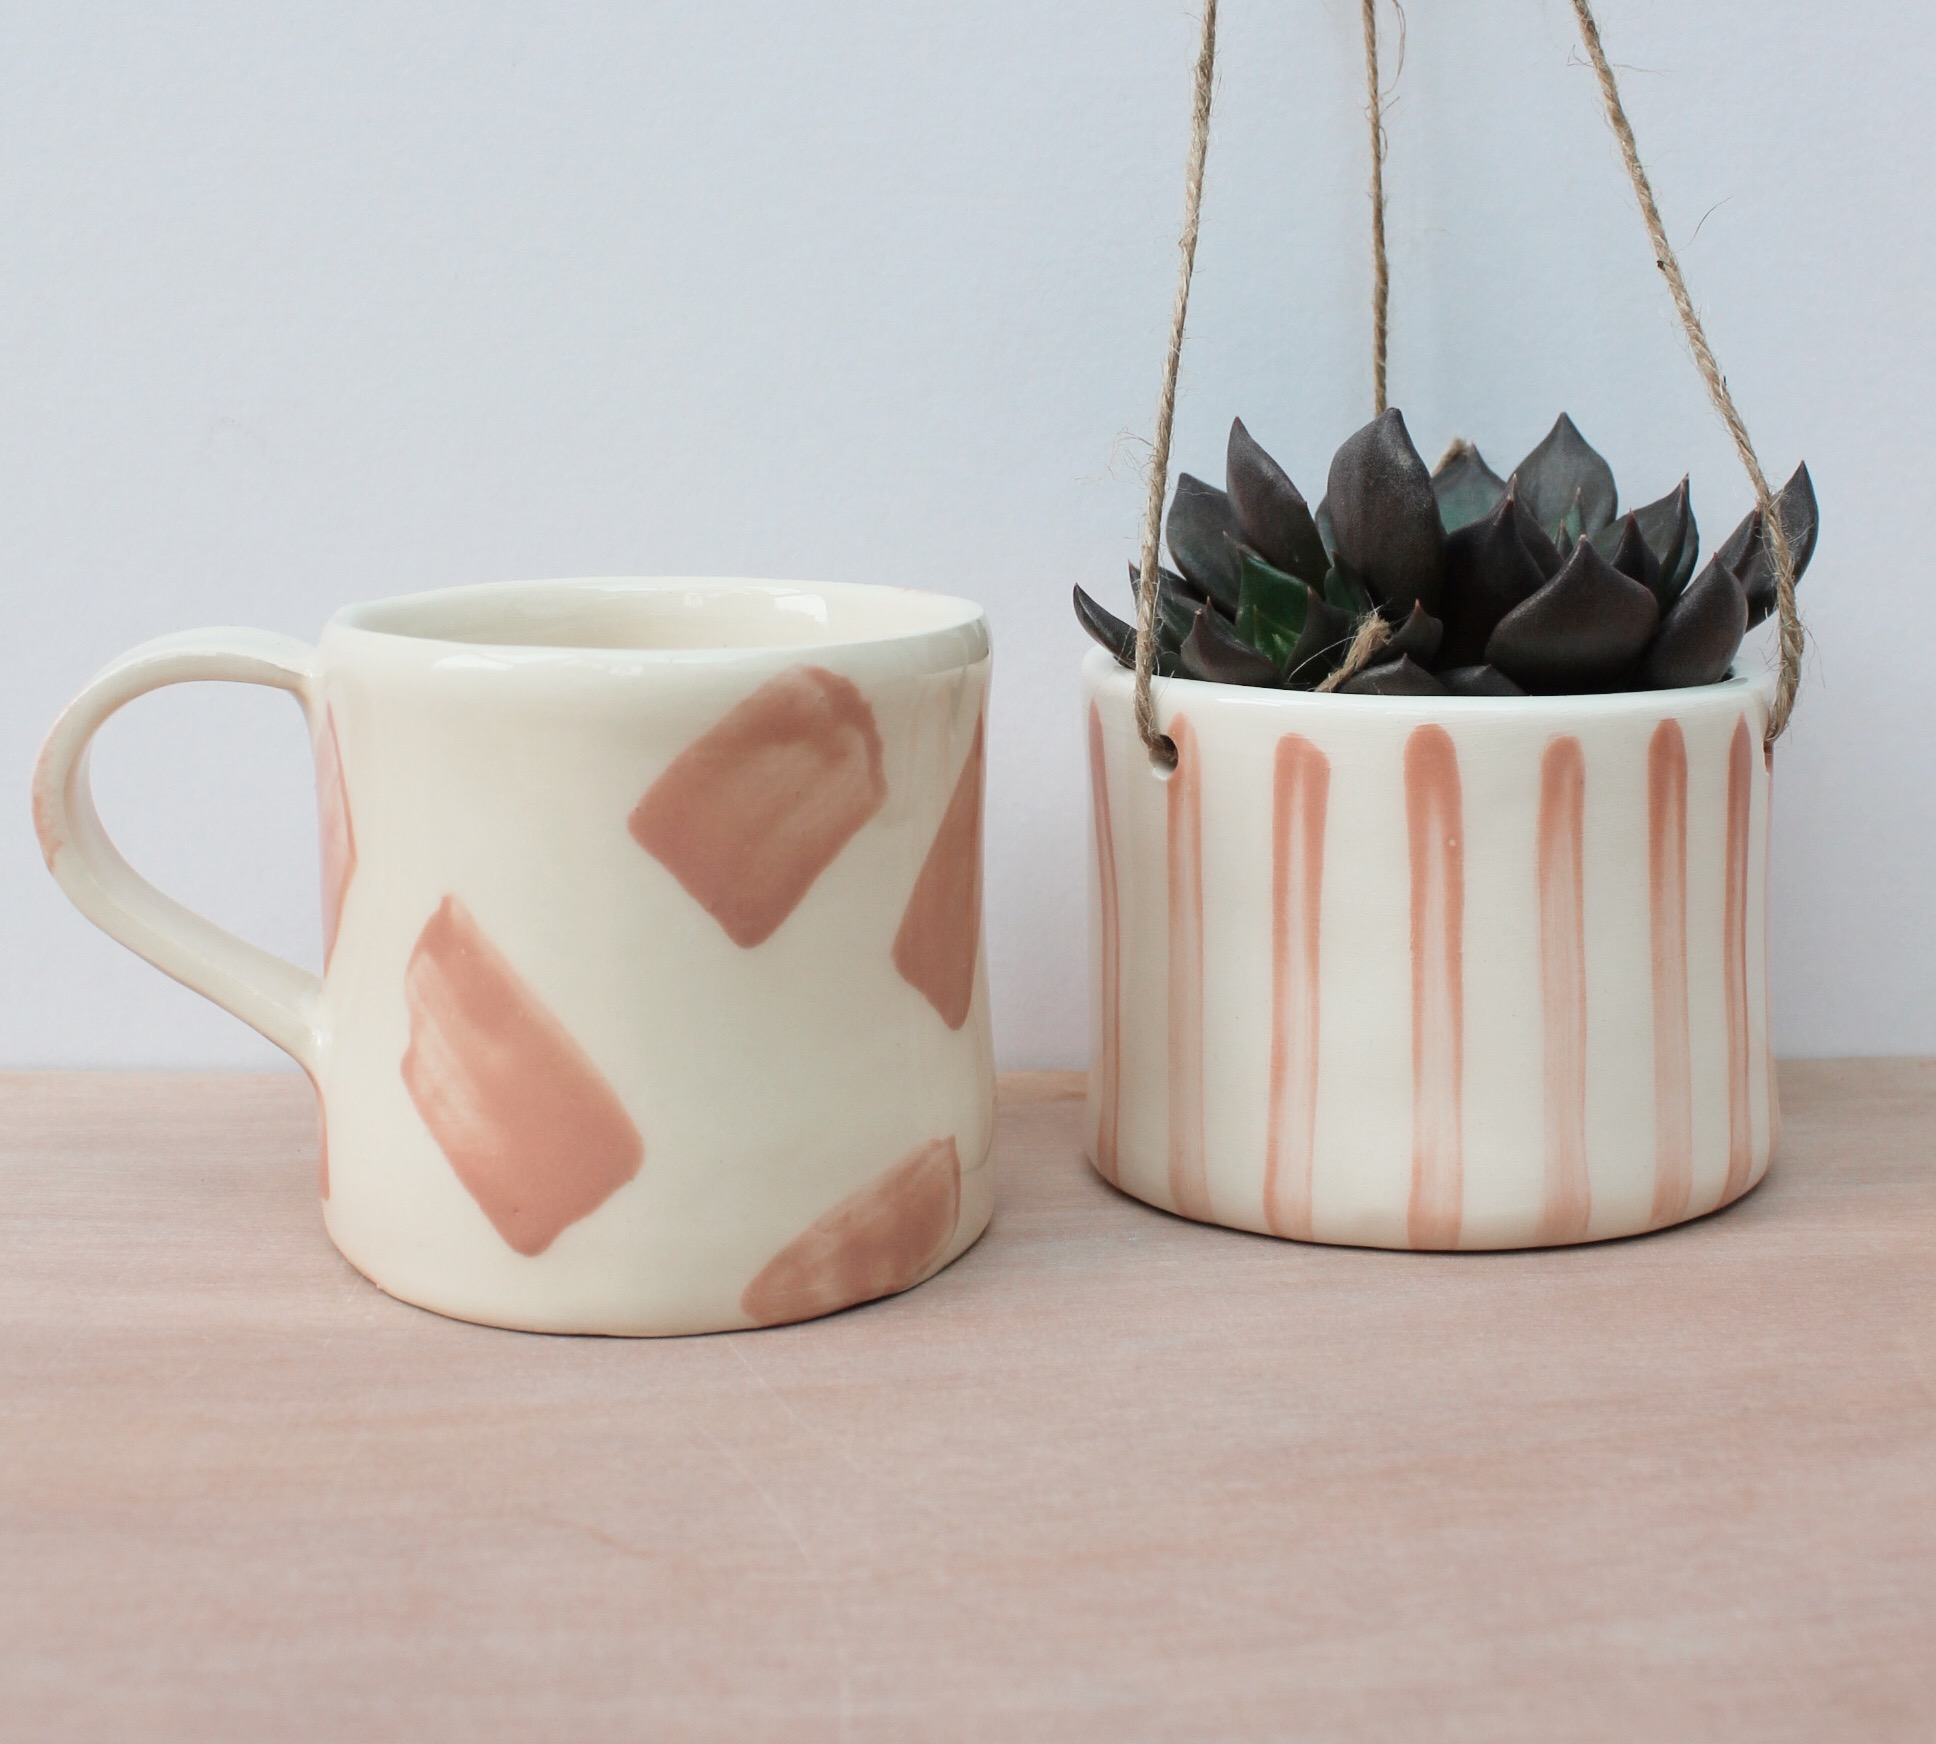 Hanging Pot and Mug.JPG